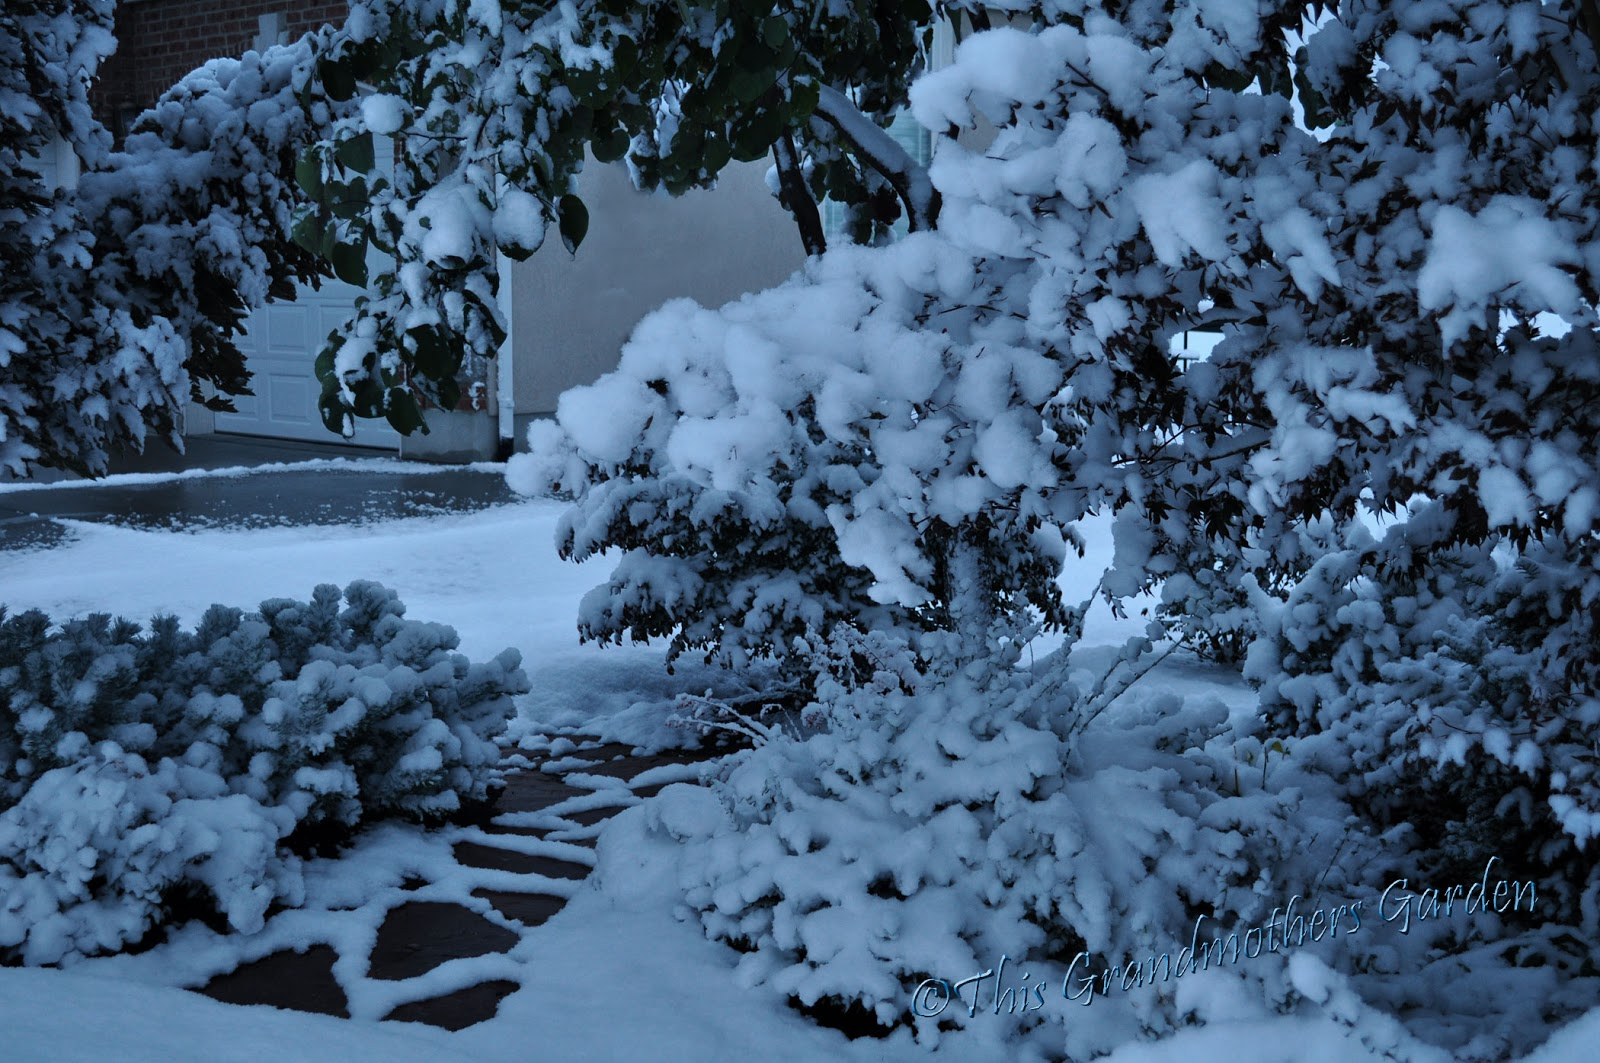 This Grandmother's Garden: When Does Autumn Turn to Winter?